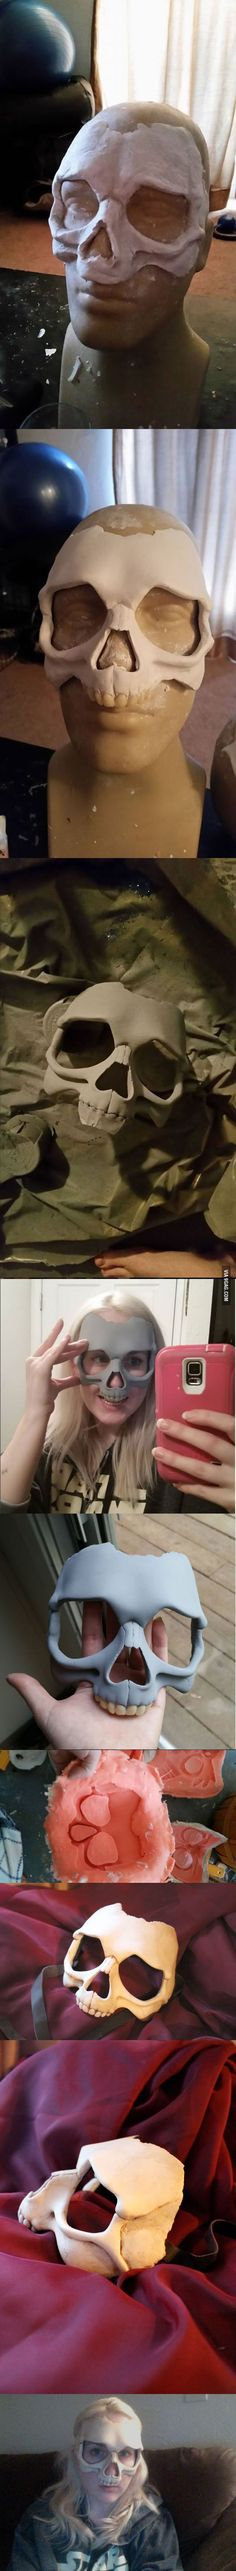 This Girl Made An Awesome Human Skull Mask For Halloween